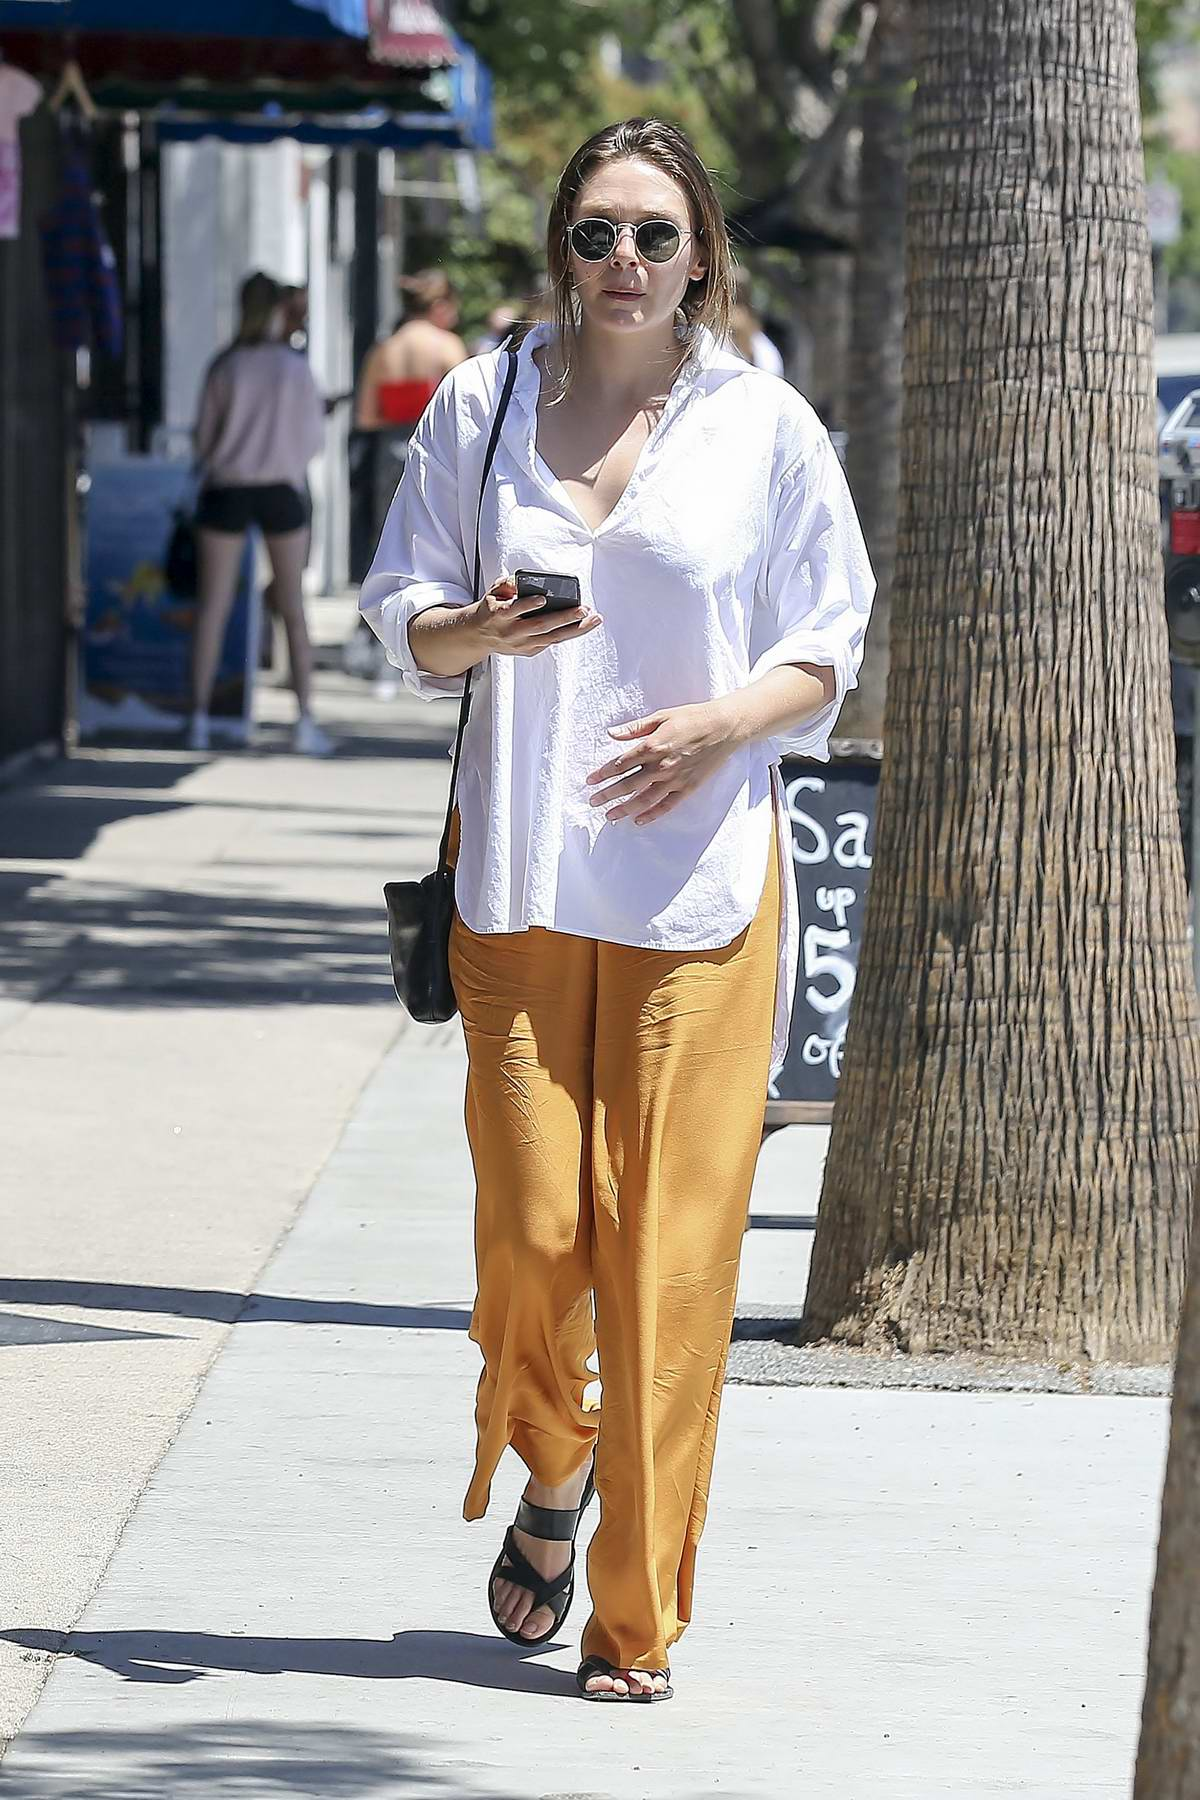 Elizabeth Olsen sports a comfy casual look in a white shirt and orange pants while out shopping in Los Angeles